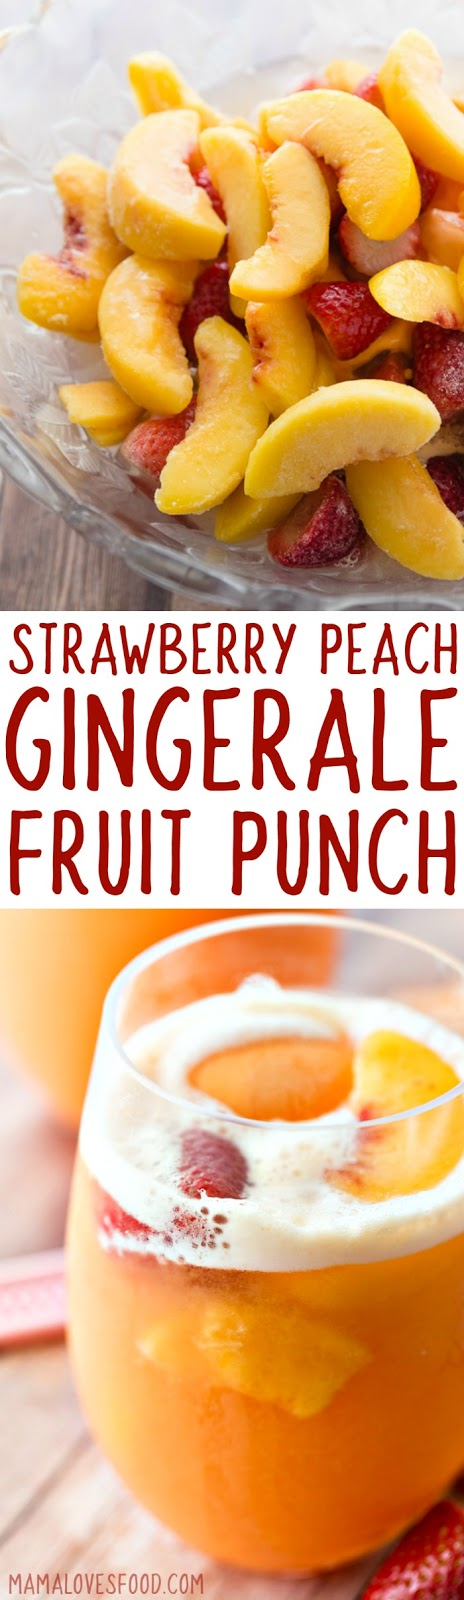 sherbet and ginger ale punch recipe